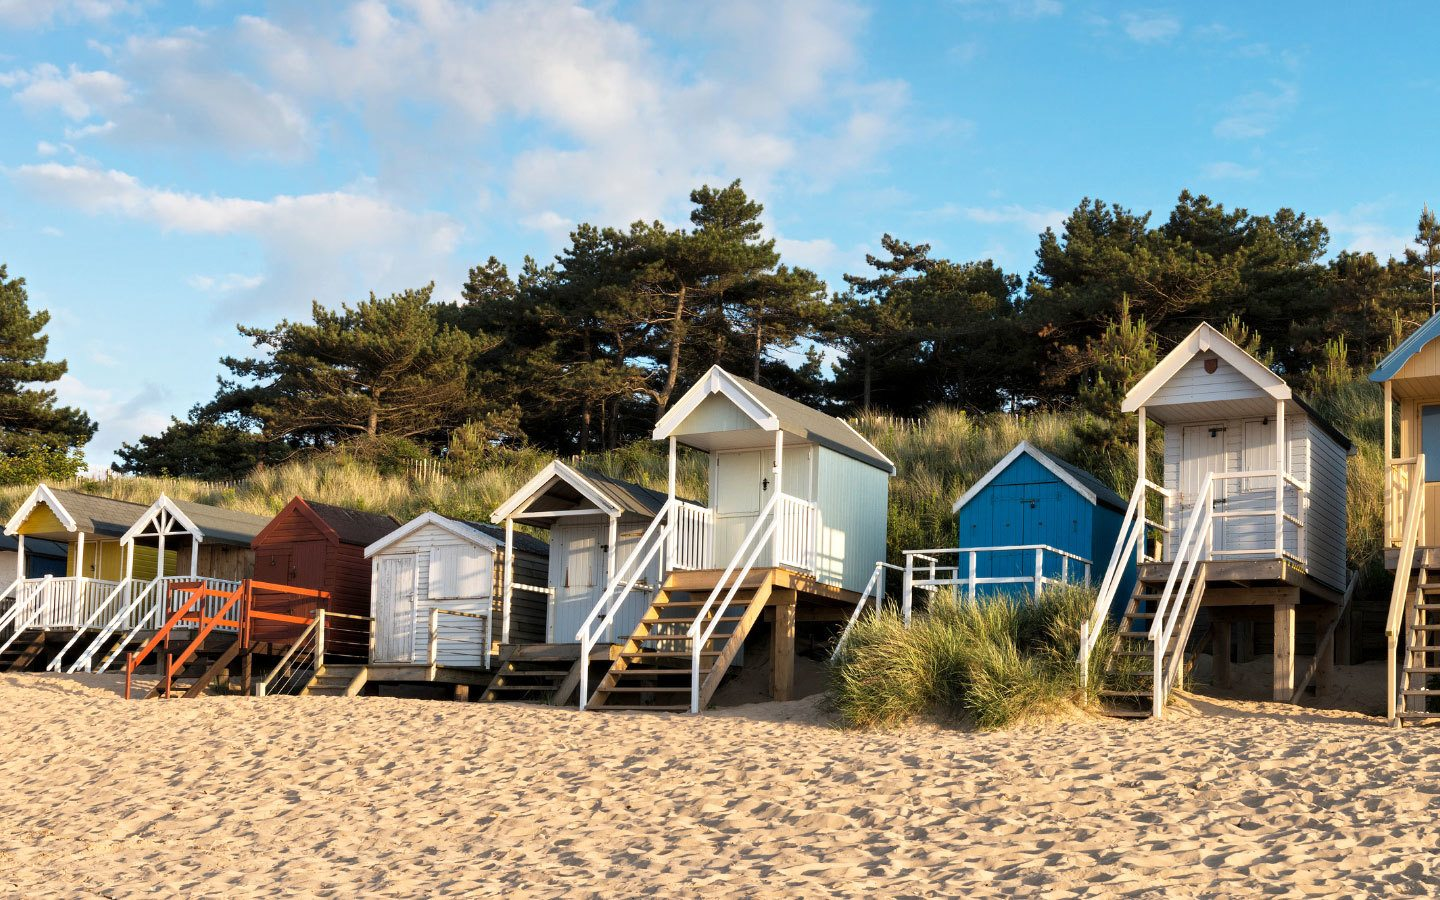 Beach huts at Wells-next-the-Sea in North Norfolk, on a walking holiday in the UK [photo credit Canva]